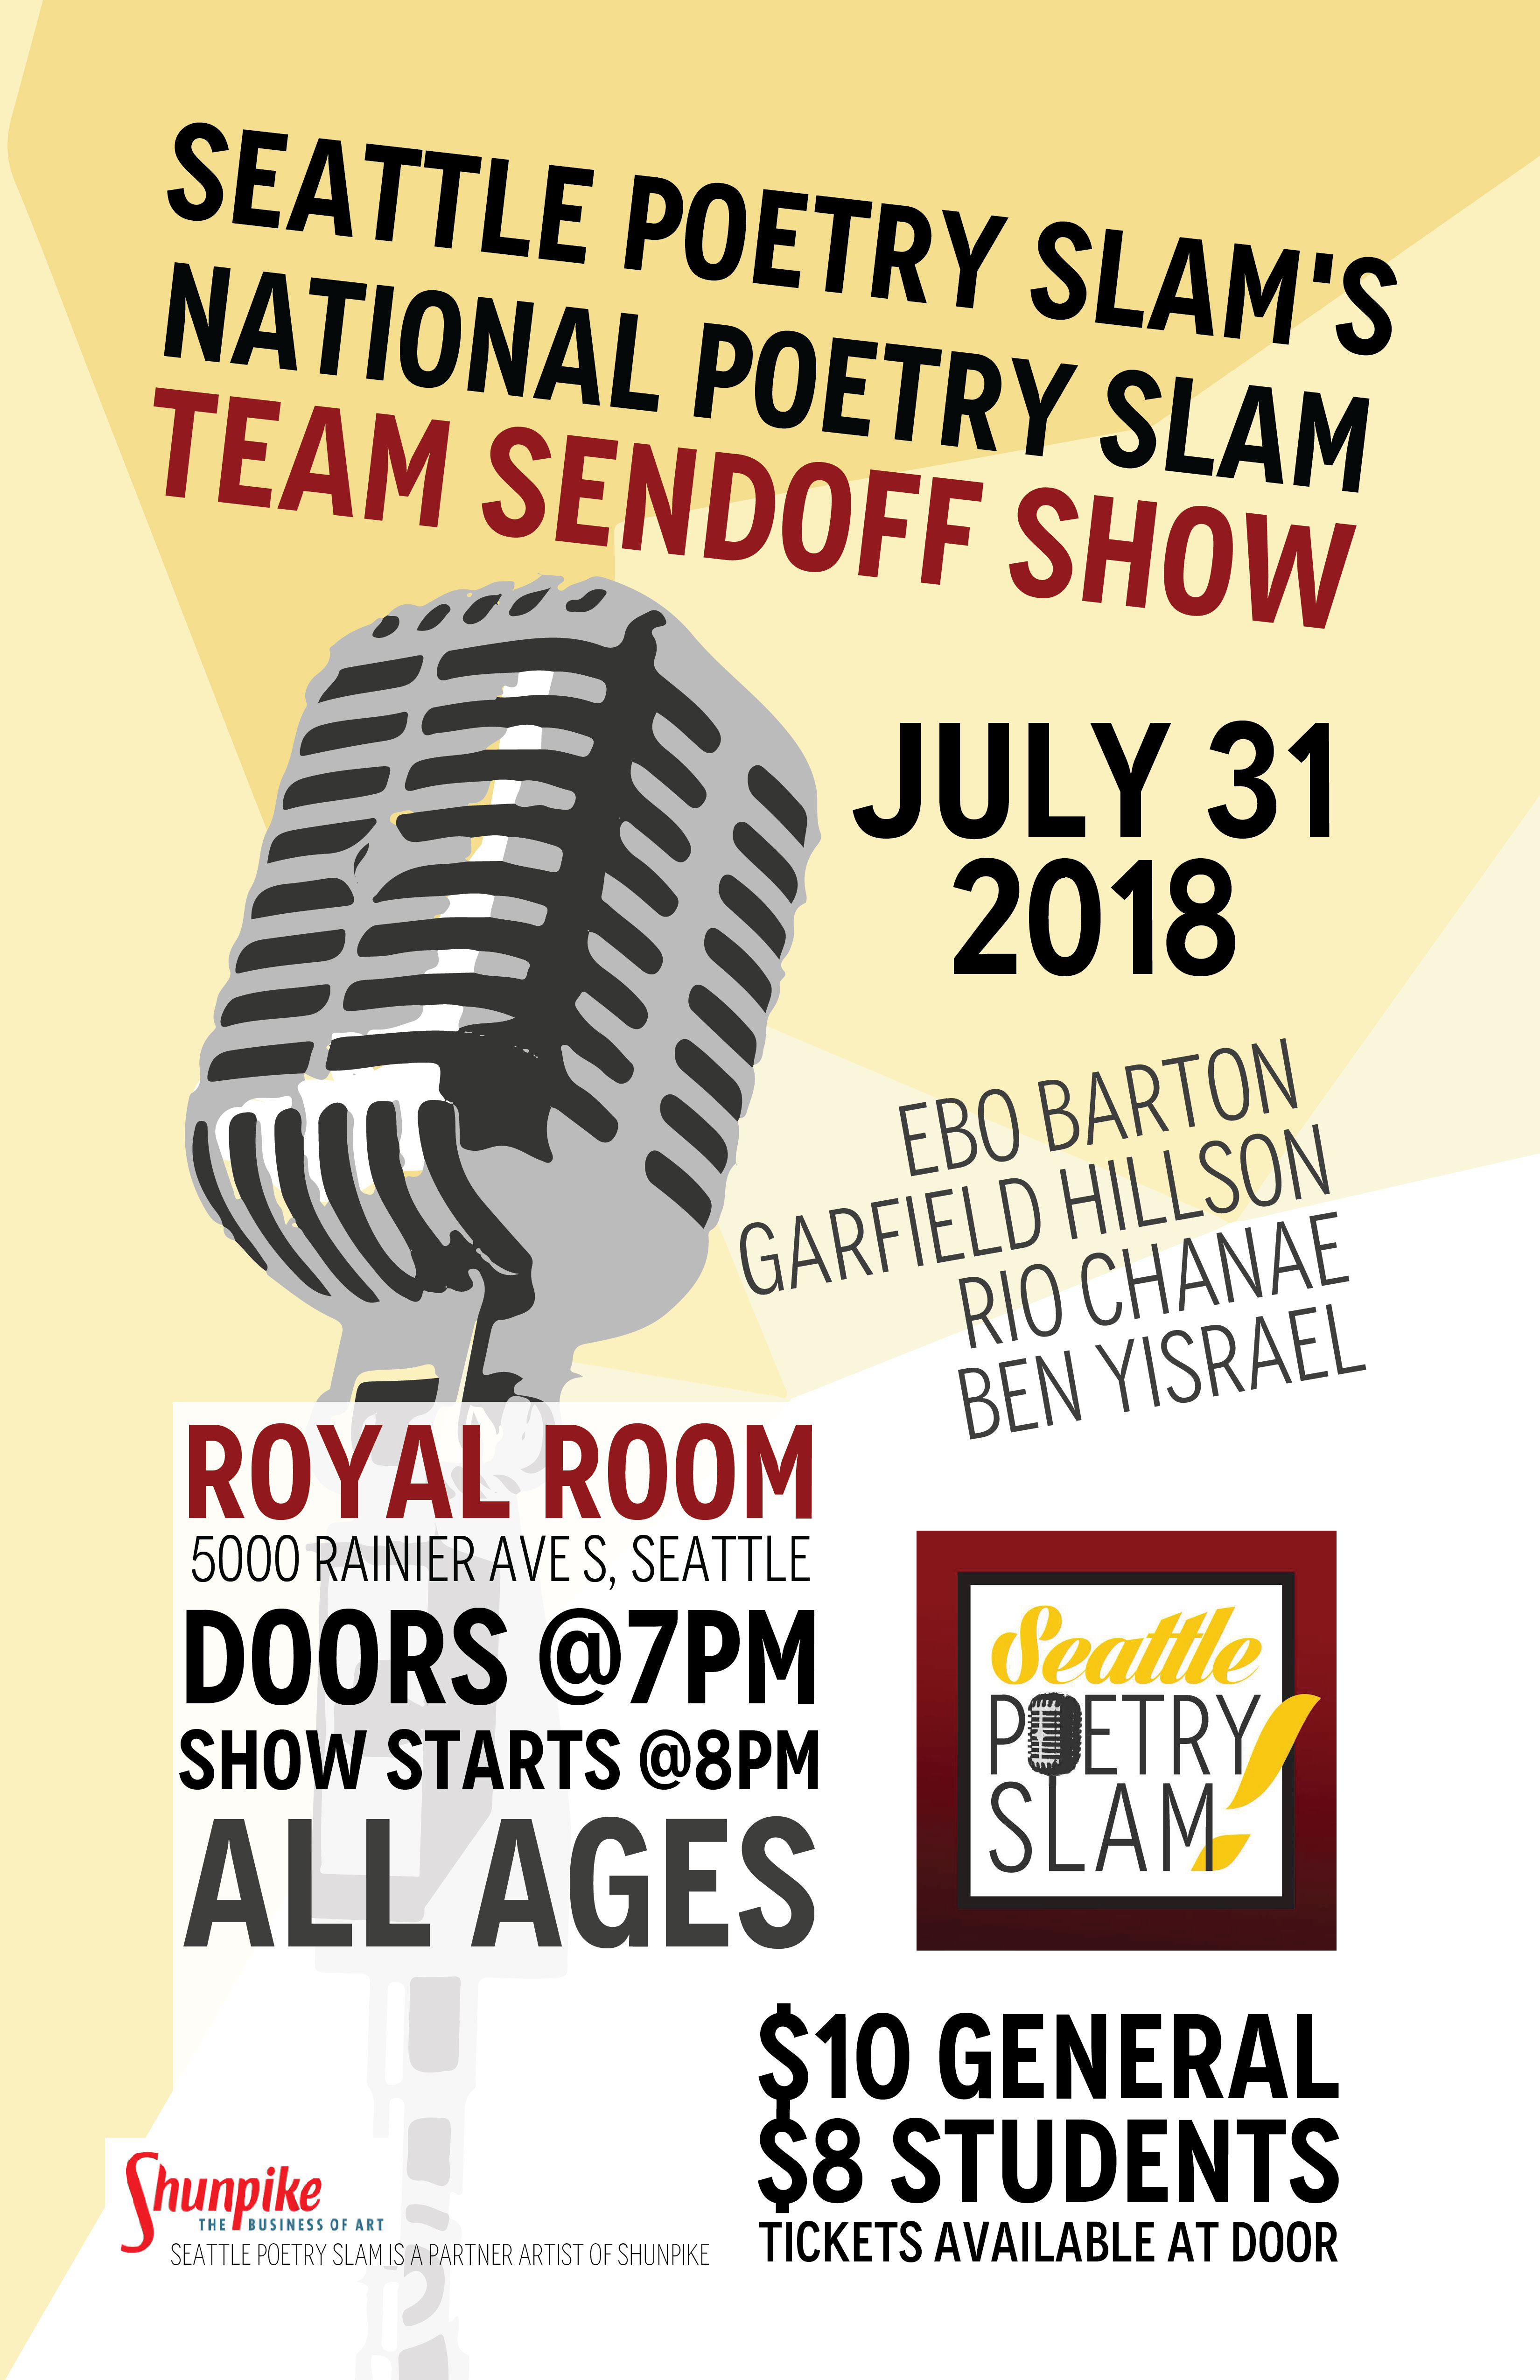 Seattle Poetry Slam National Team Send Off Show Tickets